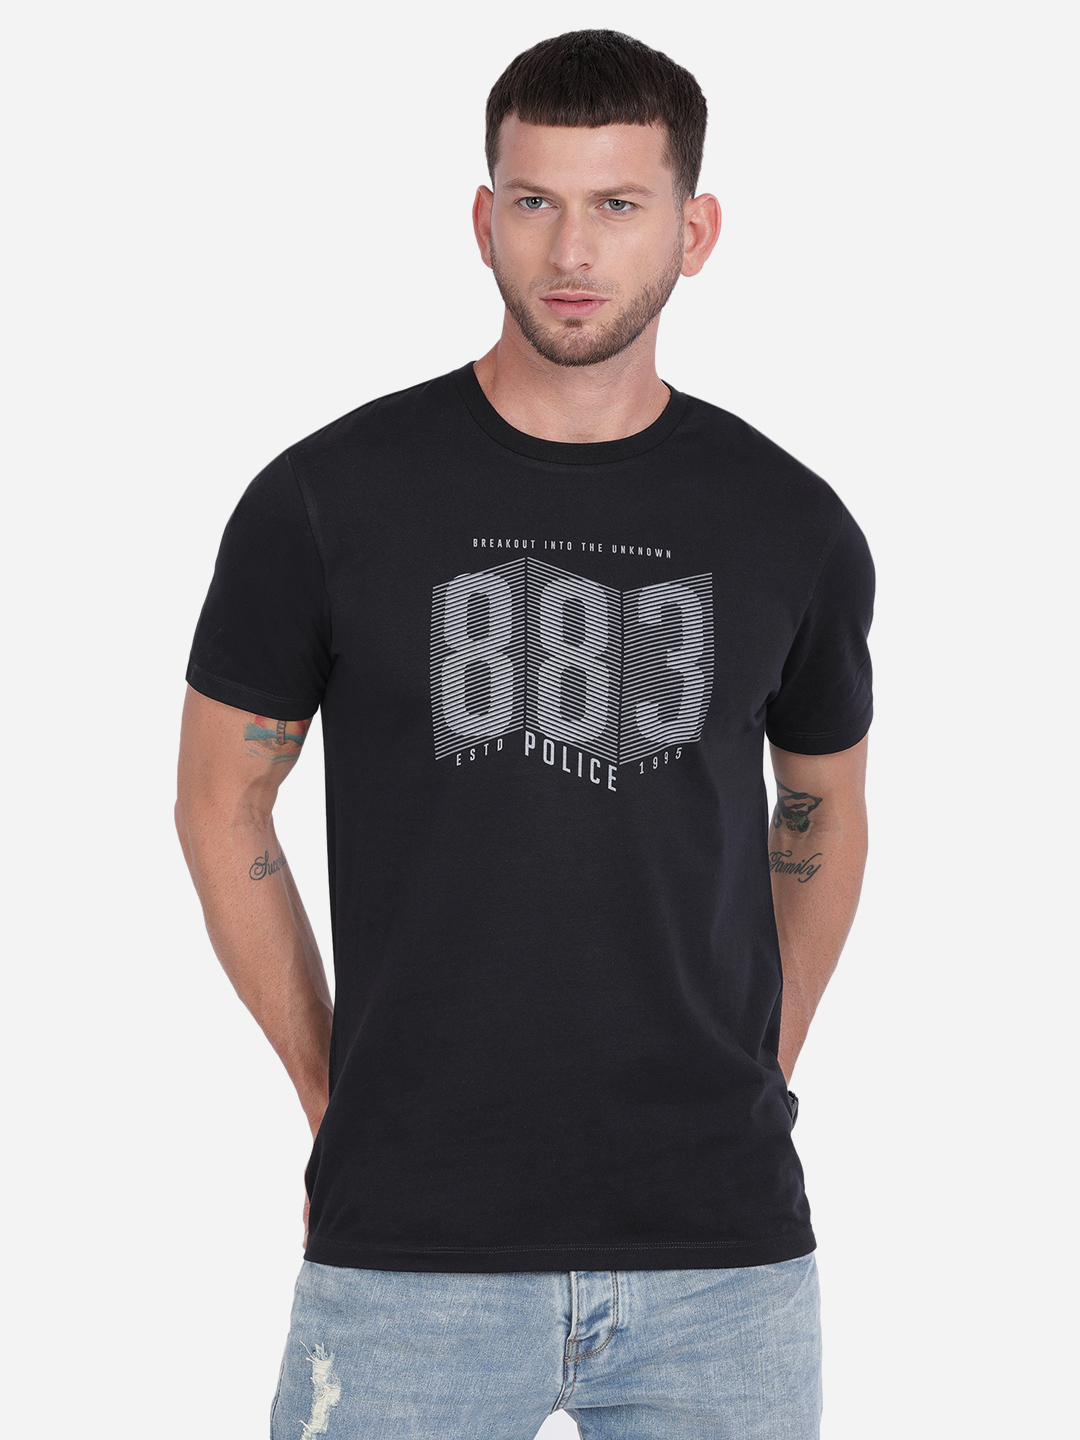 883 Police | 883 Police Tonewite India T-shirt